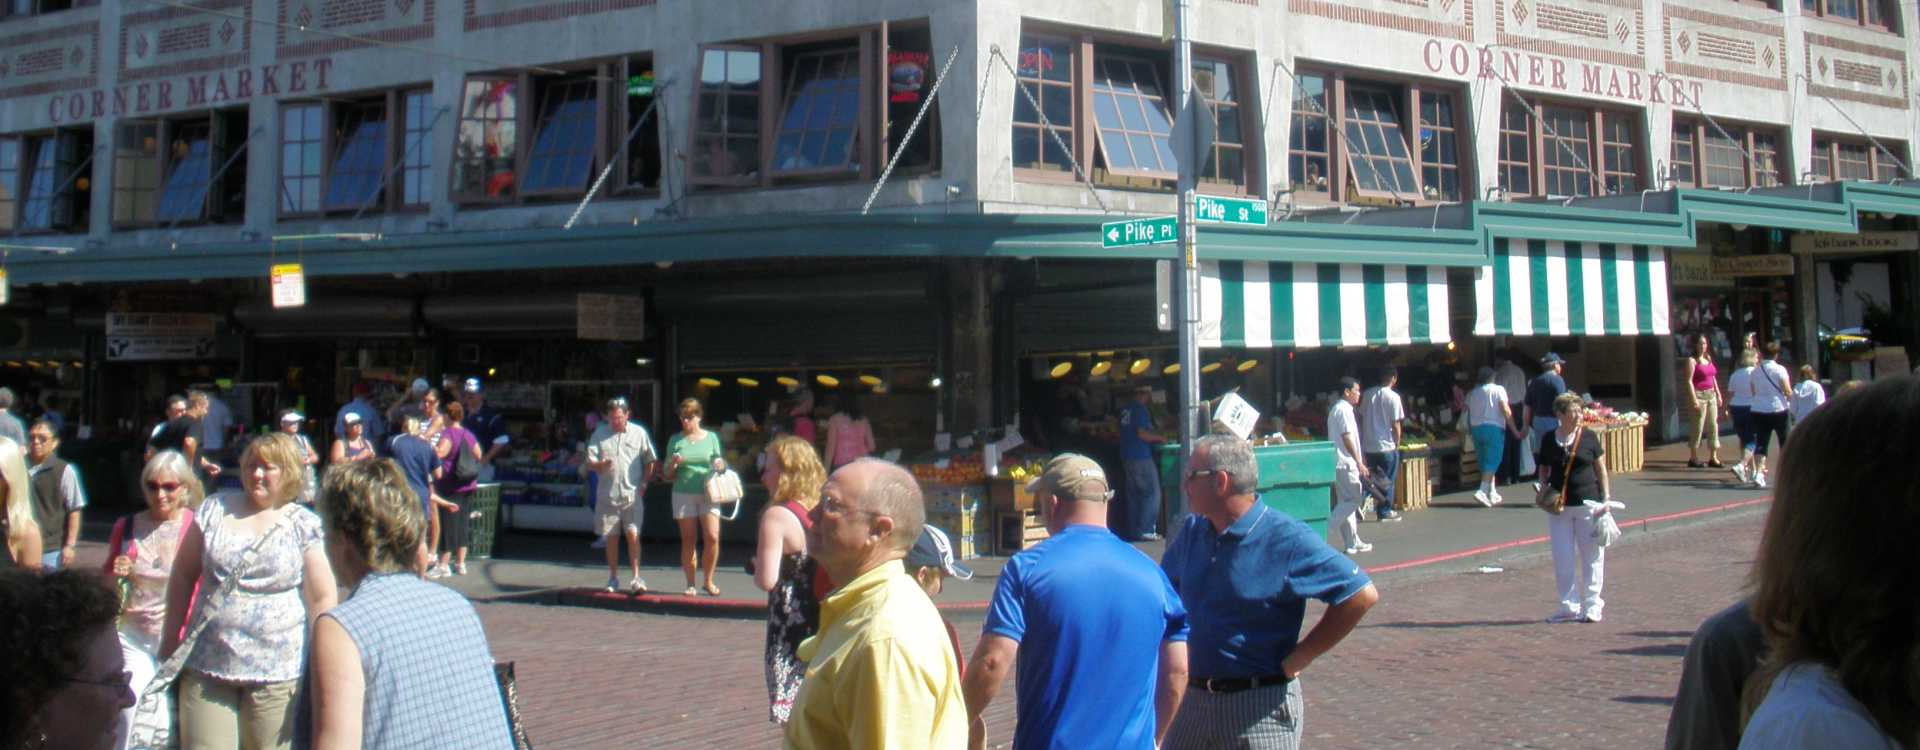 Pike_Place_Market-5.JPG